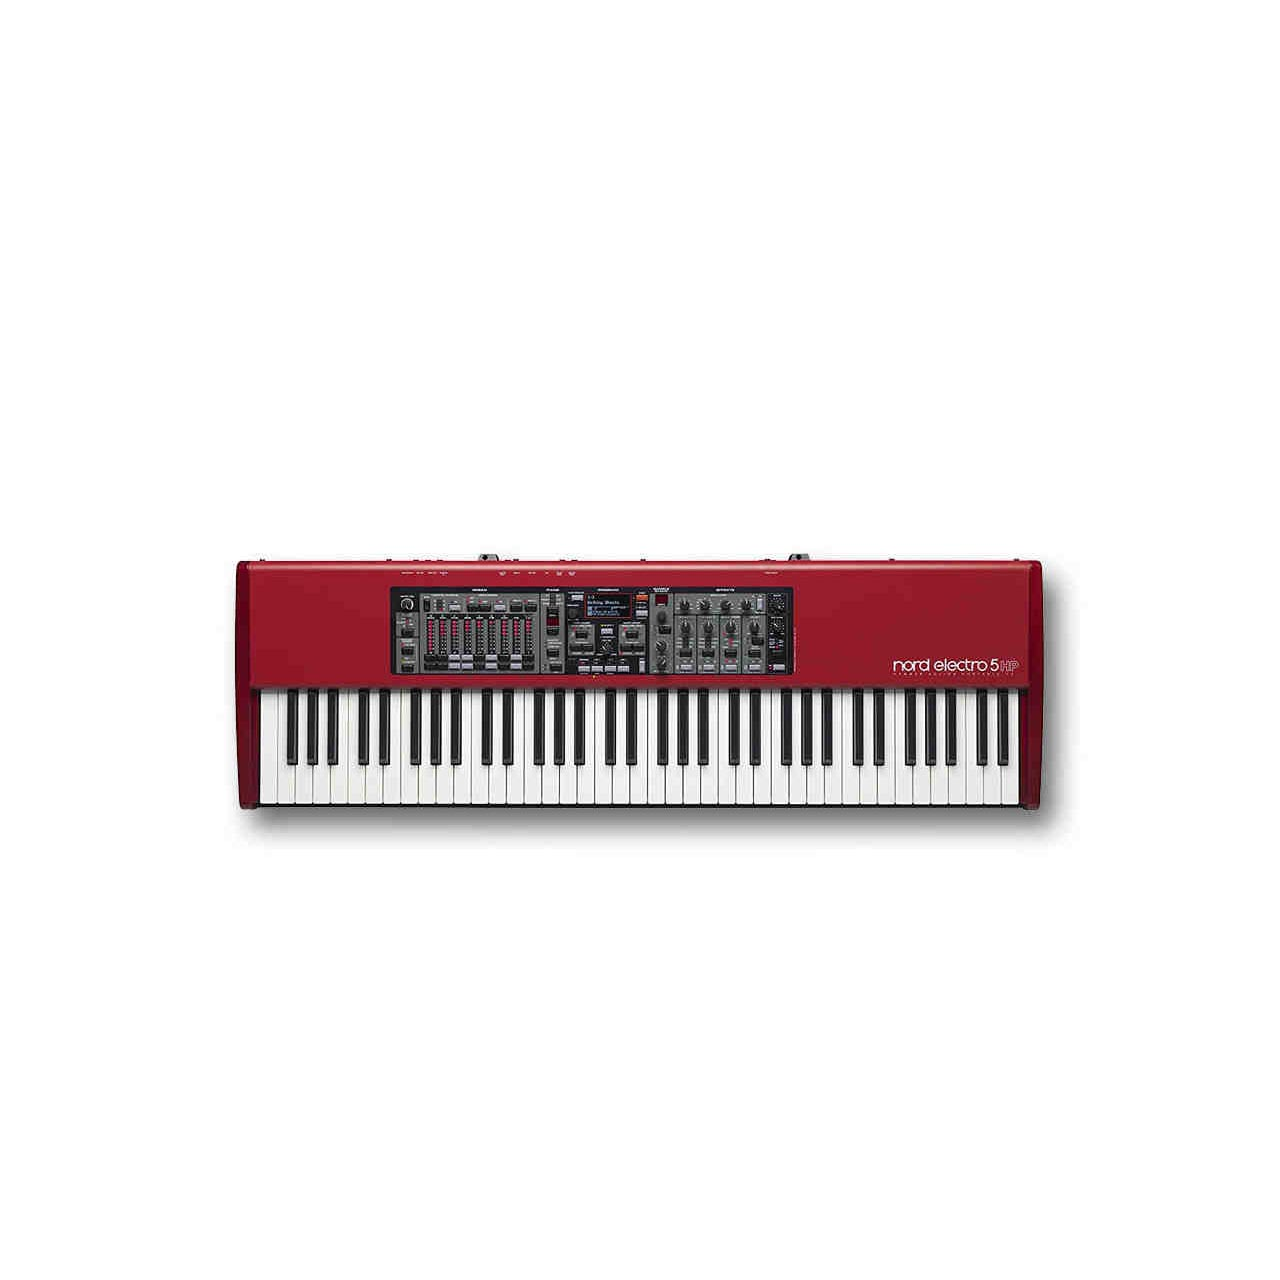 Nord Electro 5 HP73 Velocity Sensitive 73-Key Hammer Action Portable Keyboard (NELECTRO5-HP73) by Nord Keyboards